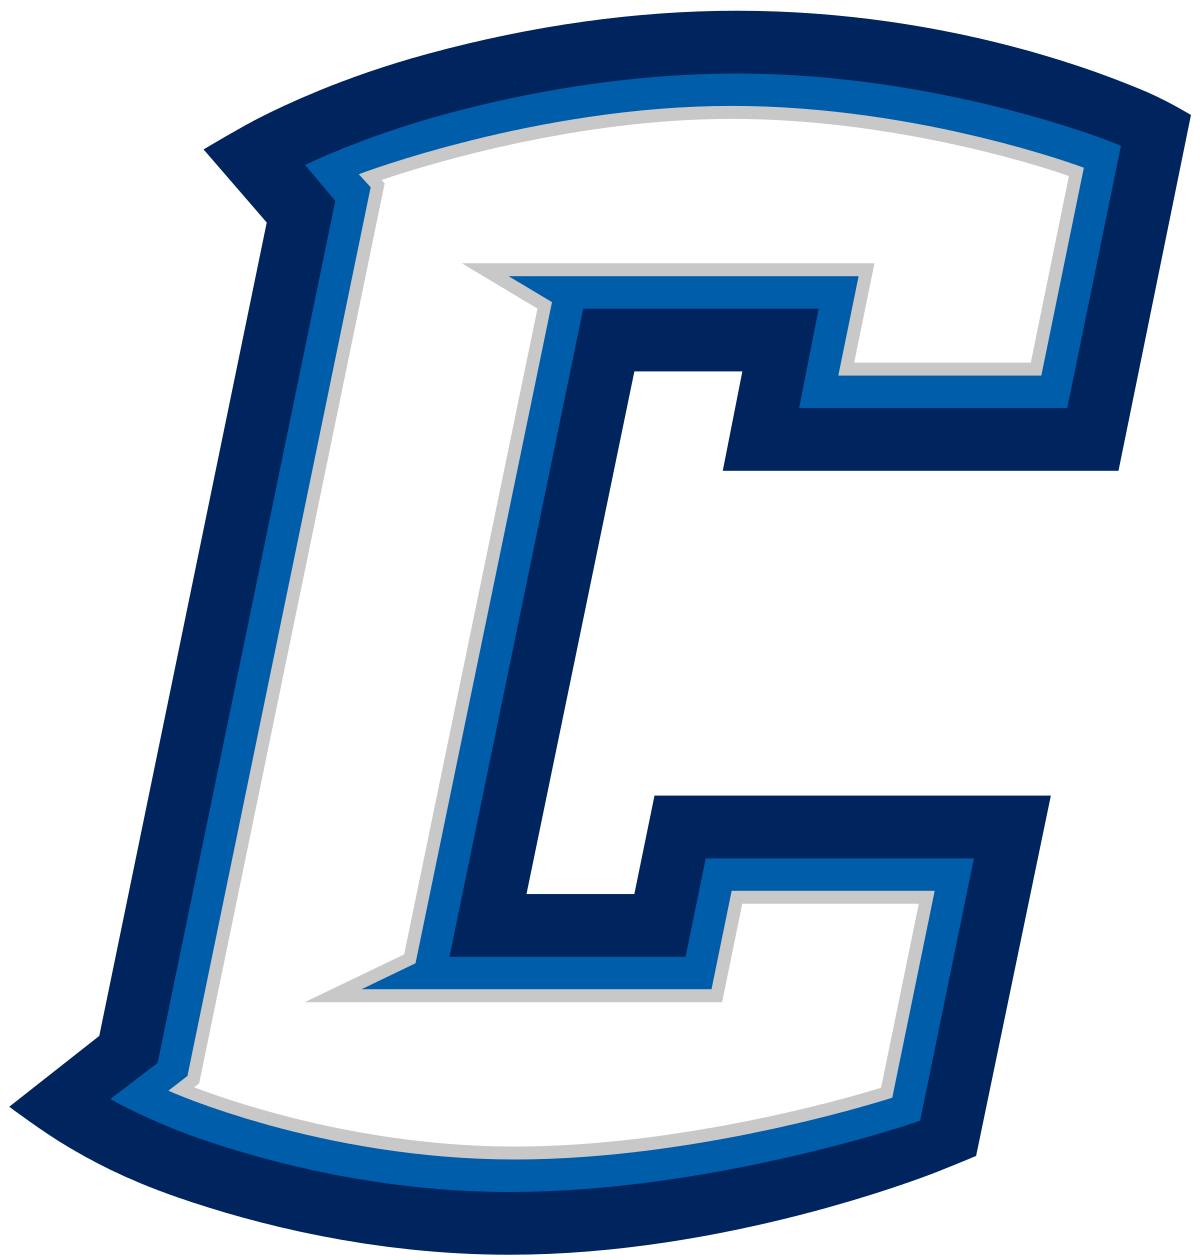 Creighton Bluejays men's basketball - Wikipedia clipart black and white download